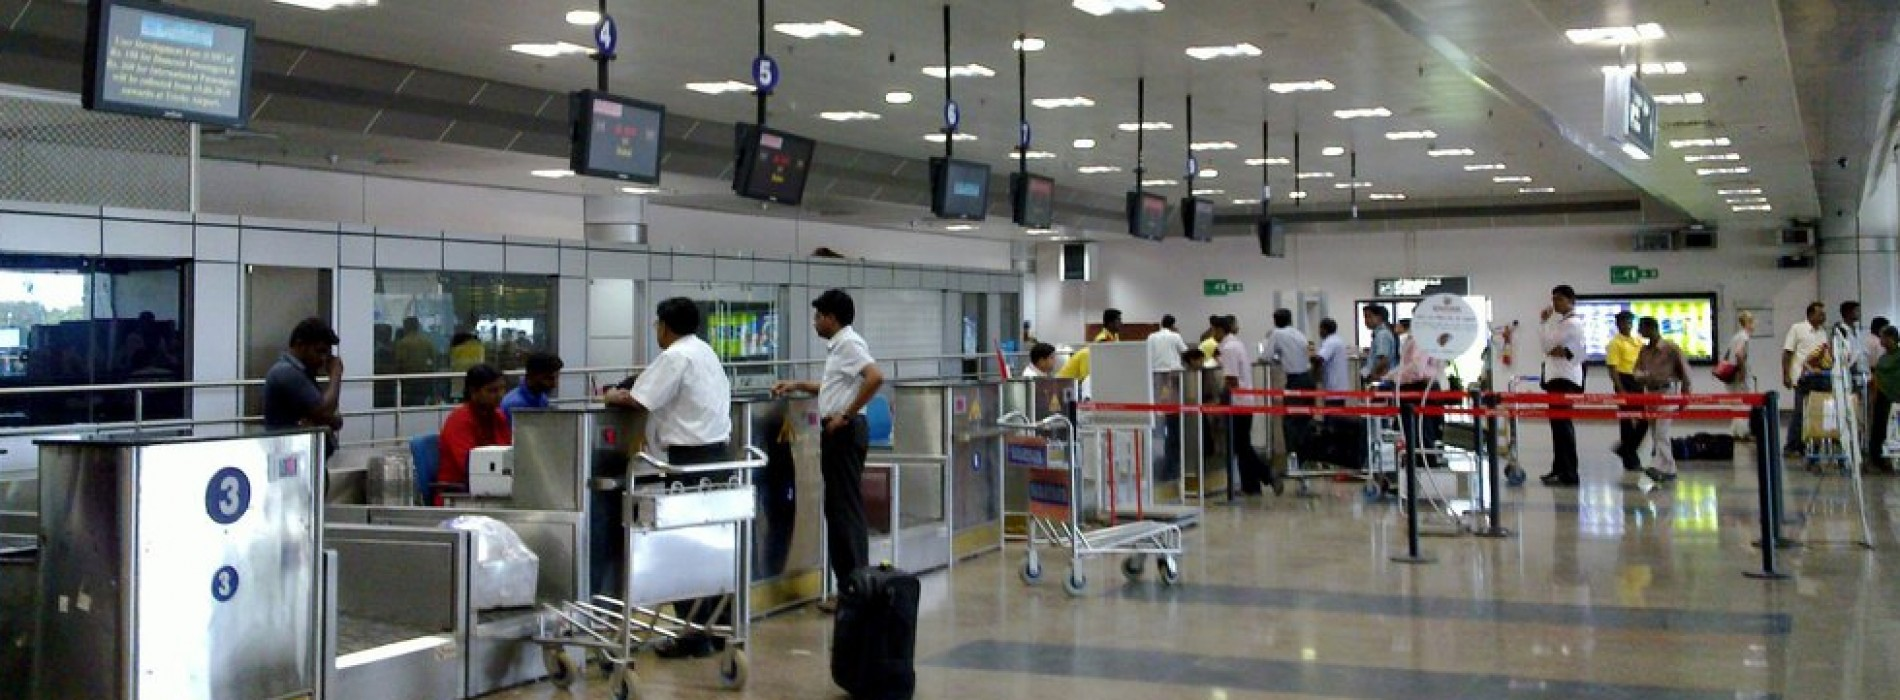 Aadhaar card based e-gates at airports in India to make travel seamless